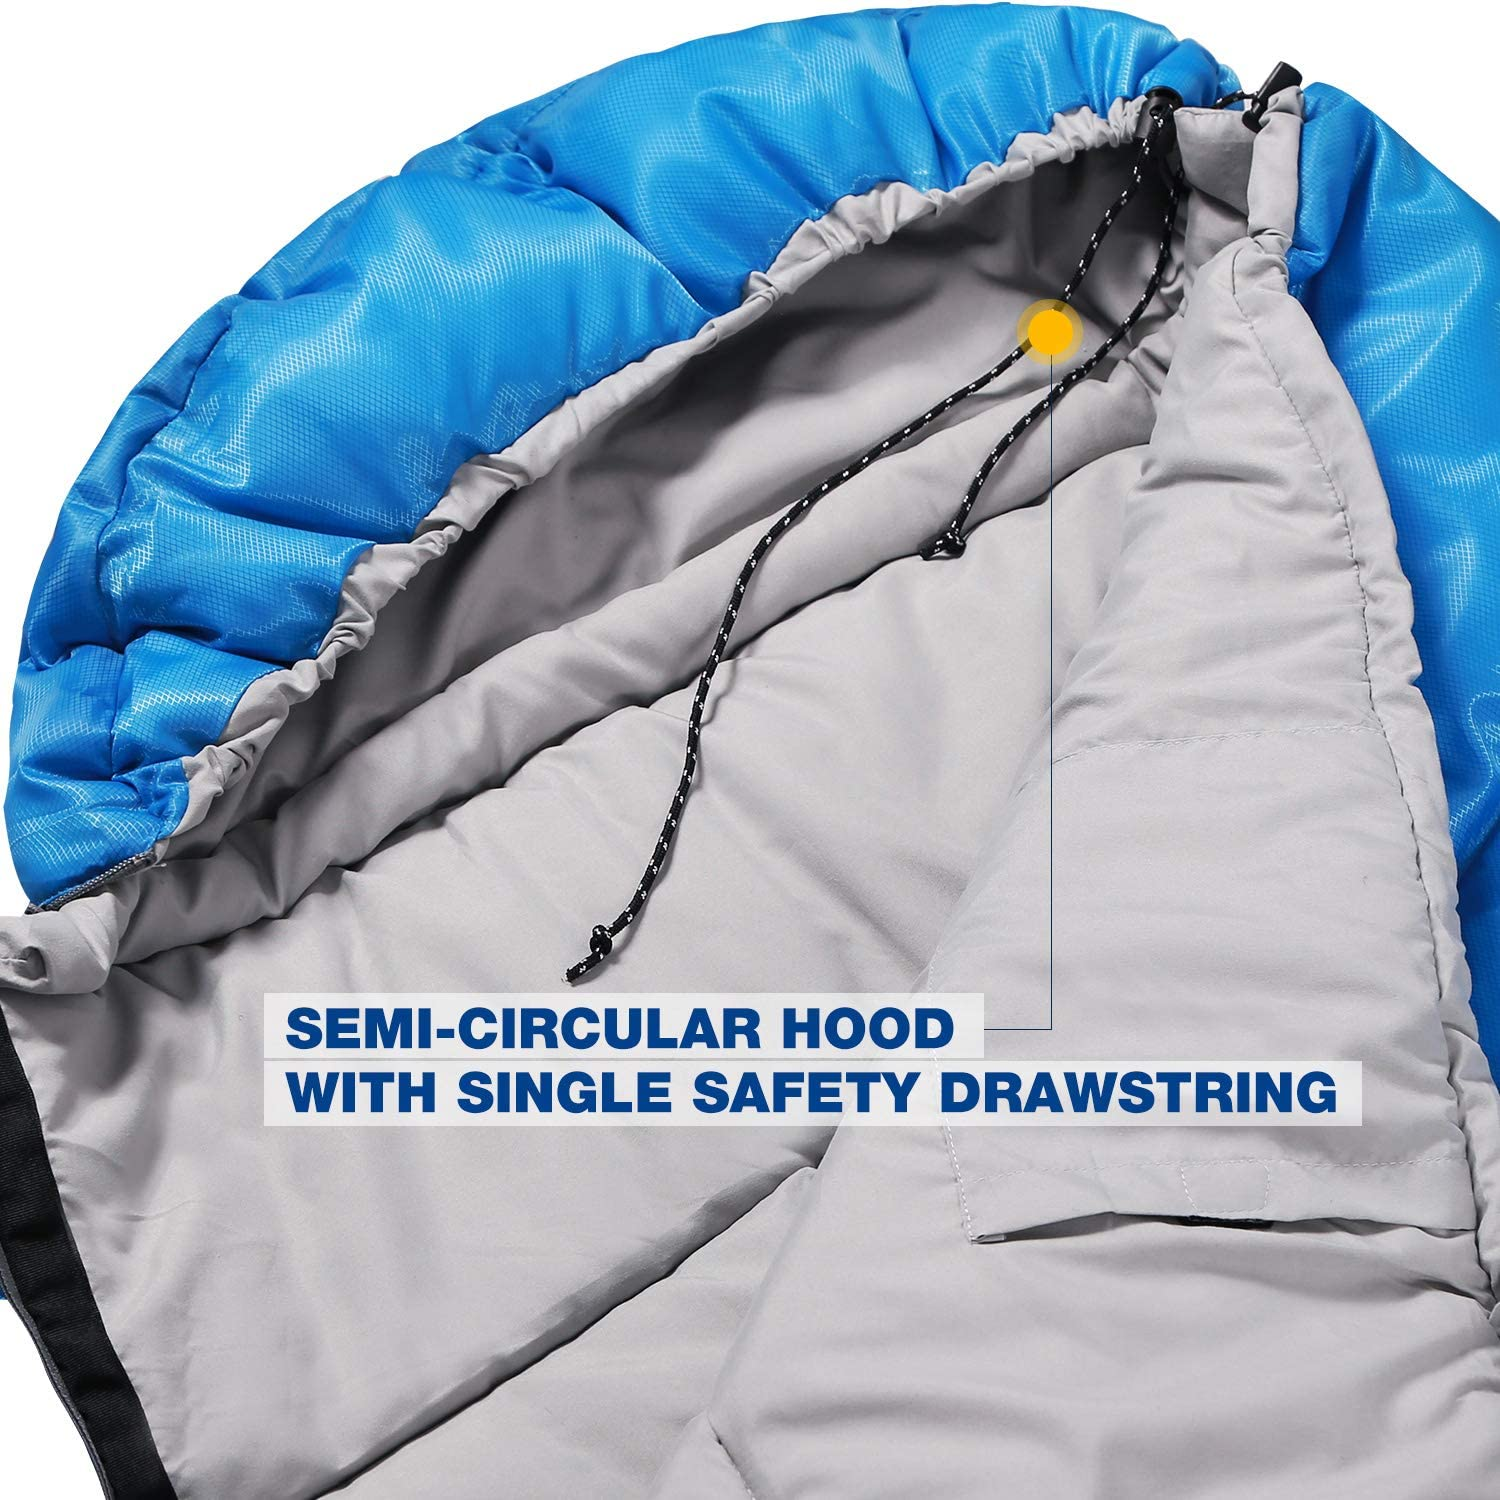 32-77 Degree 3 Season Warm or Cold Weather Fit Boys Girls /& Teens Blue//Rose Red REDCAMP Kids Sleeping Bag for Camping